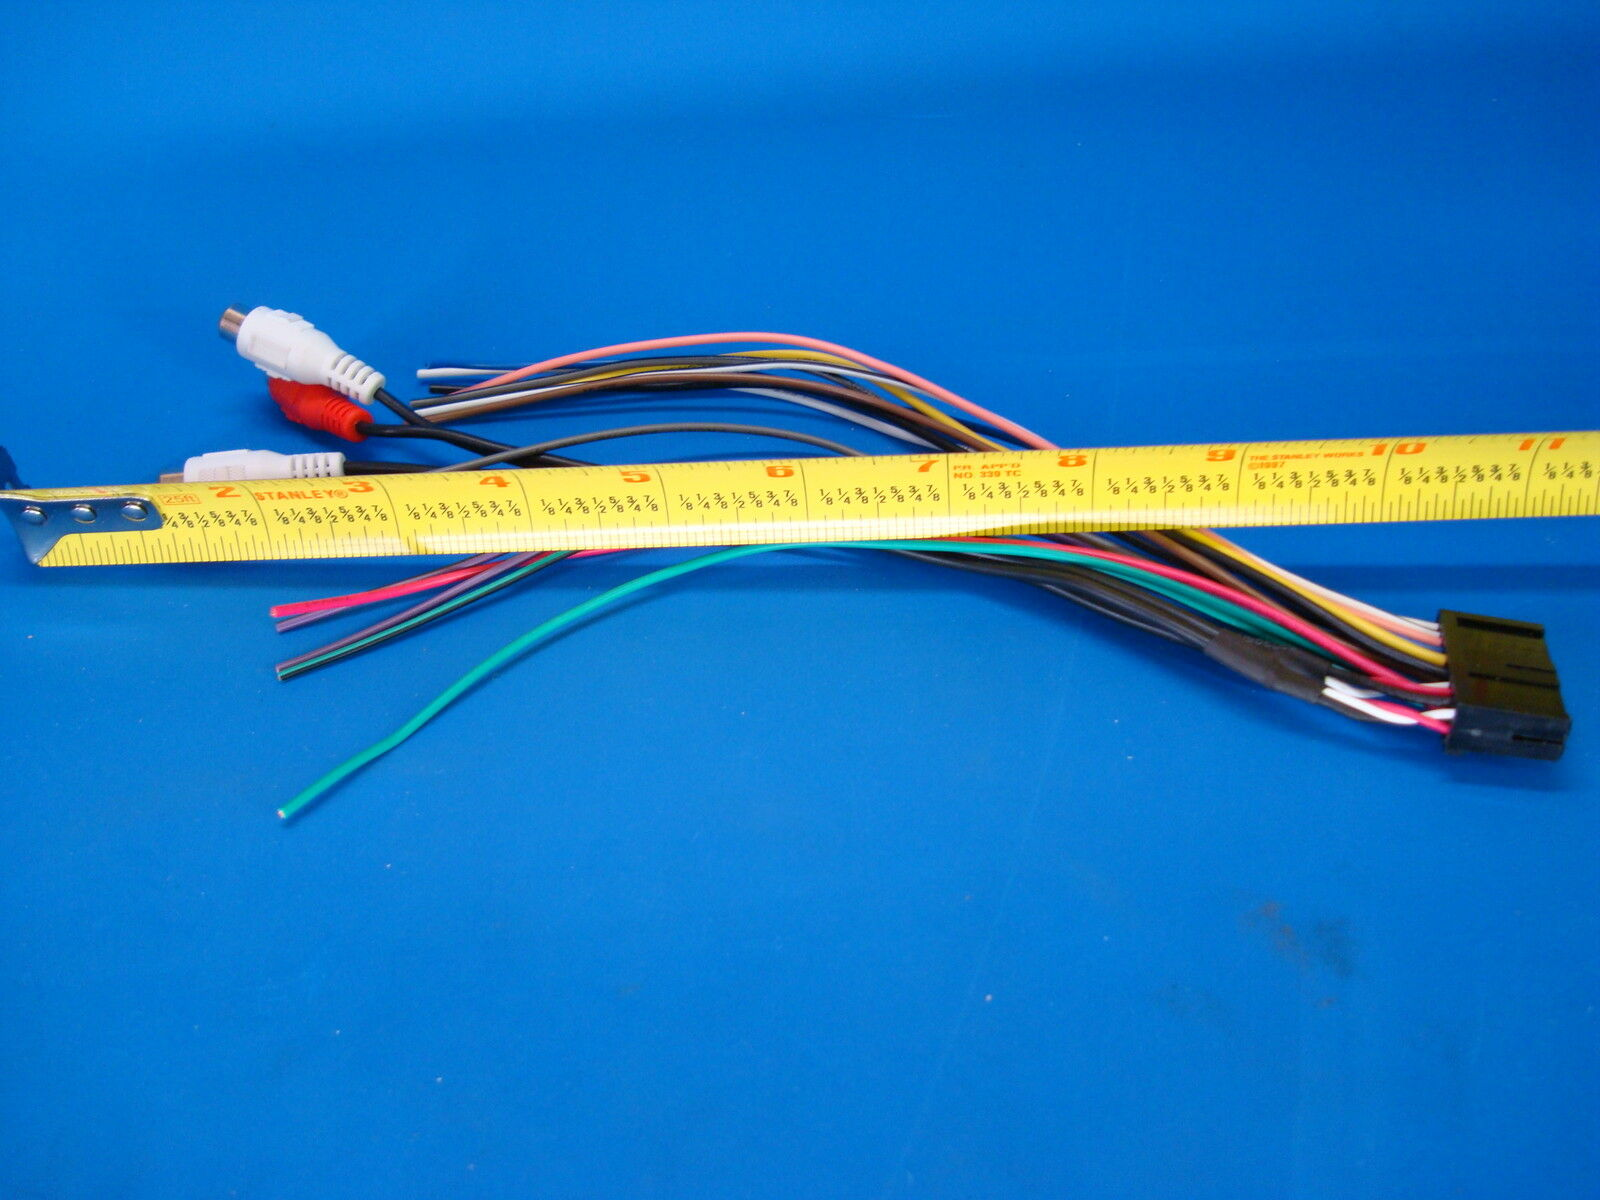 hight resolution of ssl soundstorm 20 pin radio wire harness stereo power plug back clip sd710 for sale